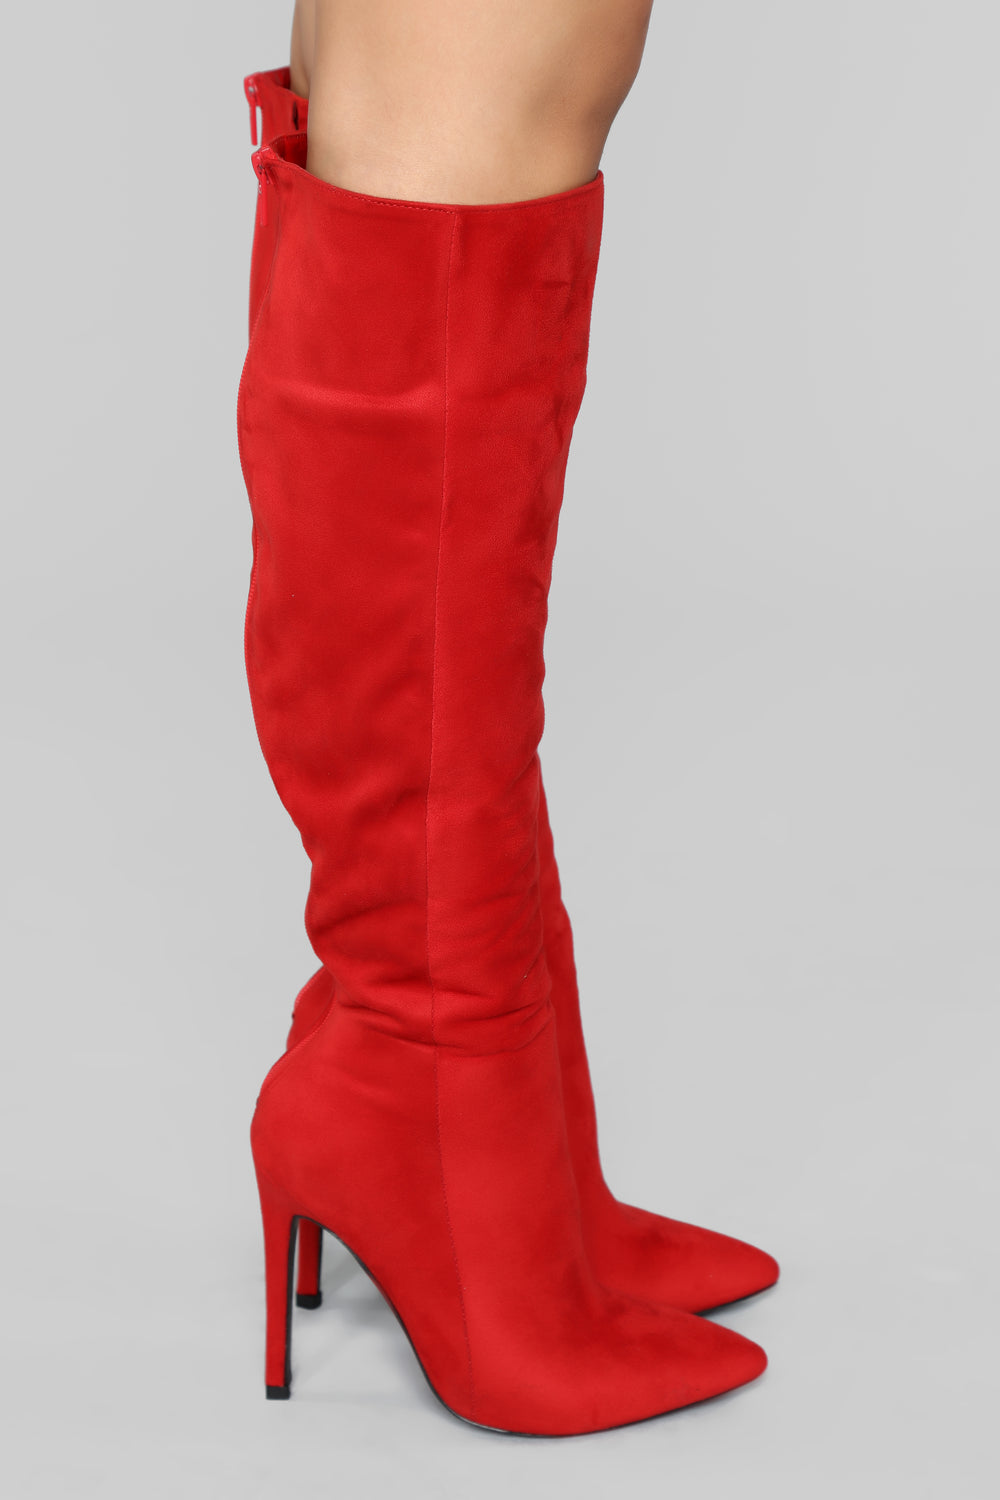 Typical Me Heeled Boot - Red